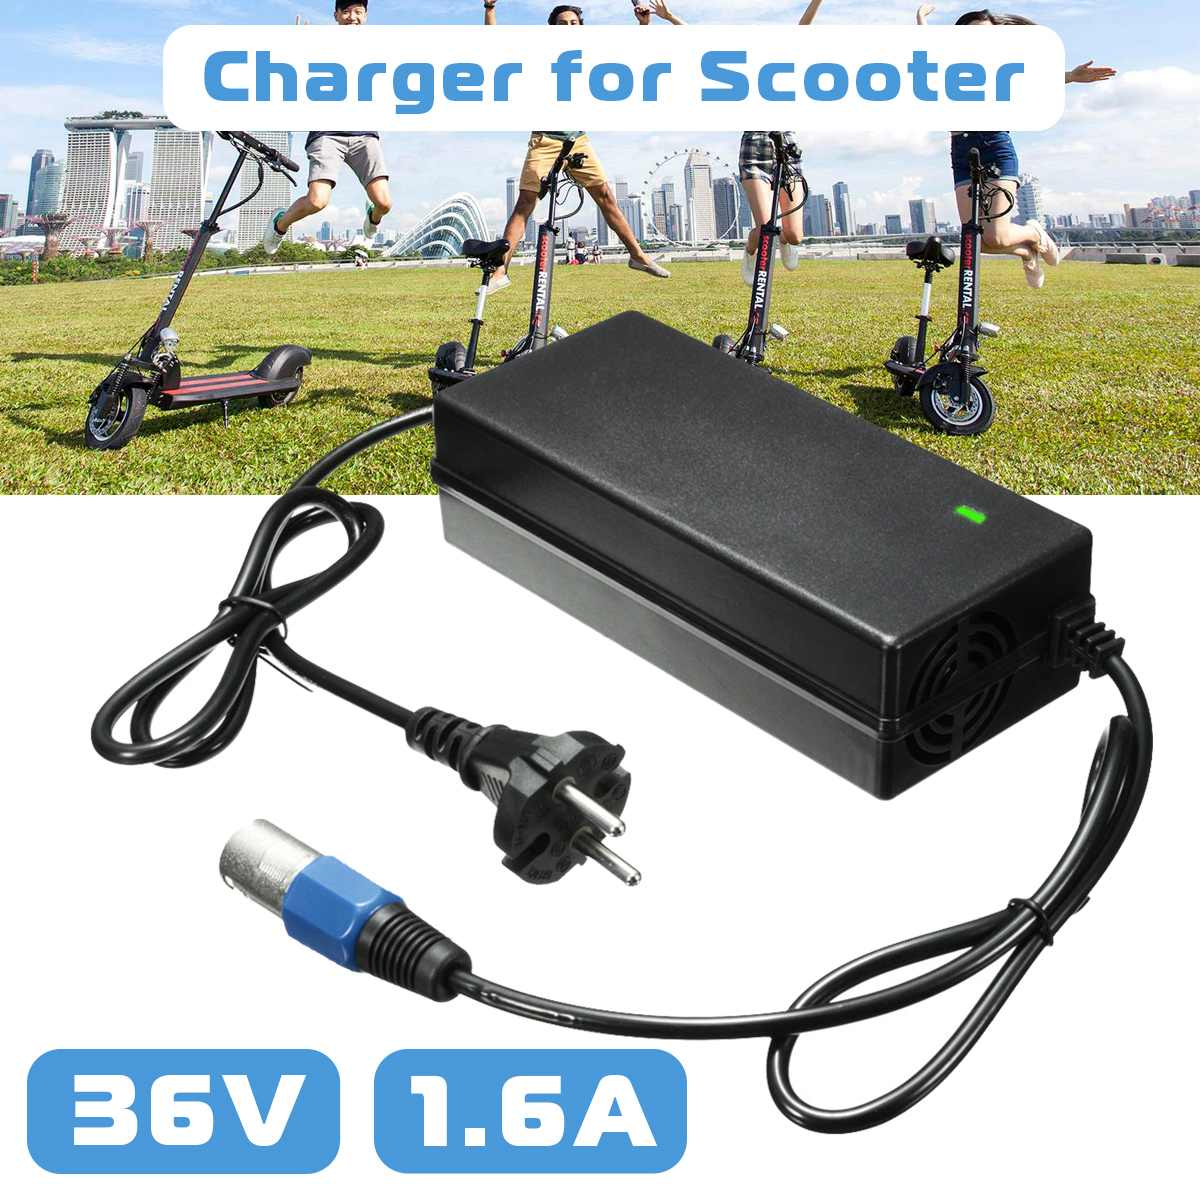 LEORY <font><b>36V</b></font> 1.6A <font><b>Charger</b></font> Adapter For <font><b>Electric</b></font> <font><b>Bike</b></font> 3pin XLR Male Lead Acid <font><b>Electric</b></font> <font><b>Battery</b></font> <font><b>Charger</b></font> For Scooter IZIP I-750 I-1000 image